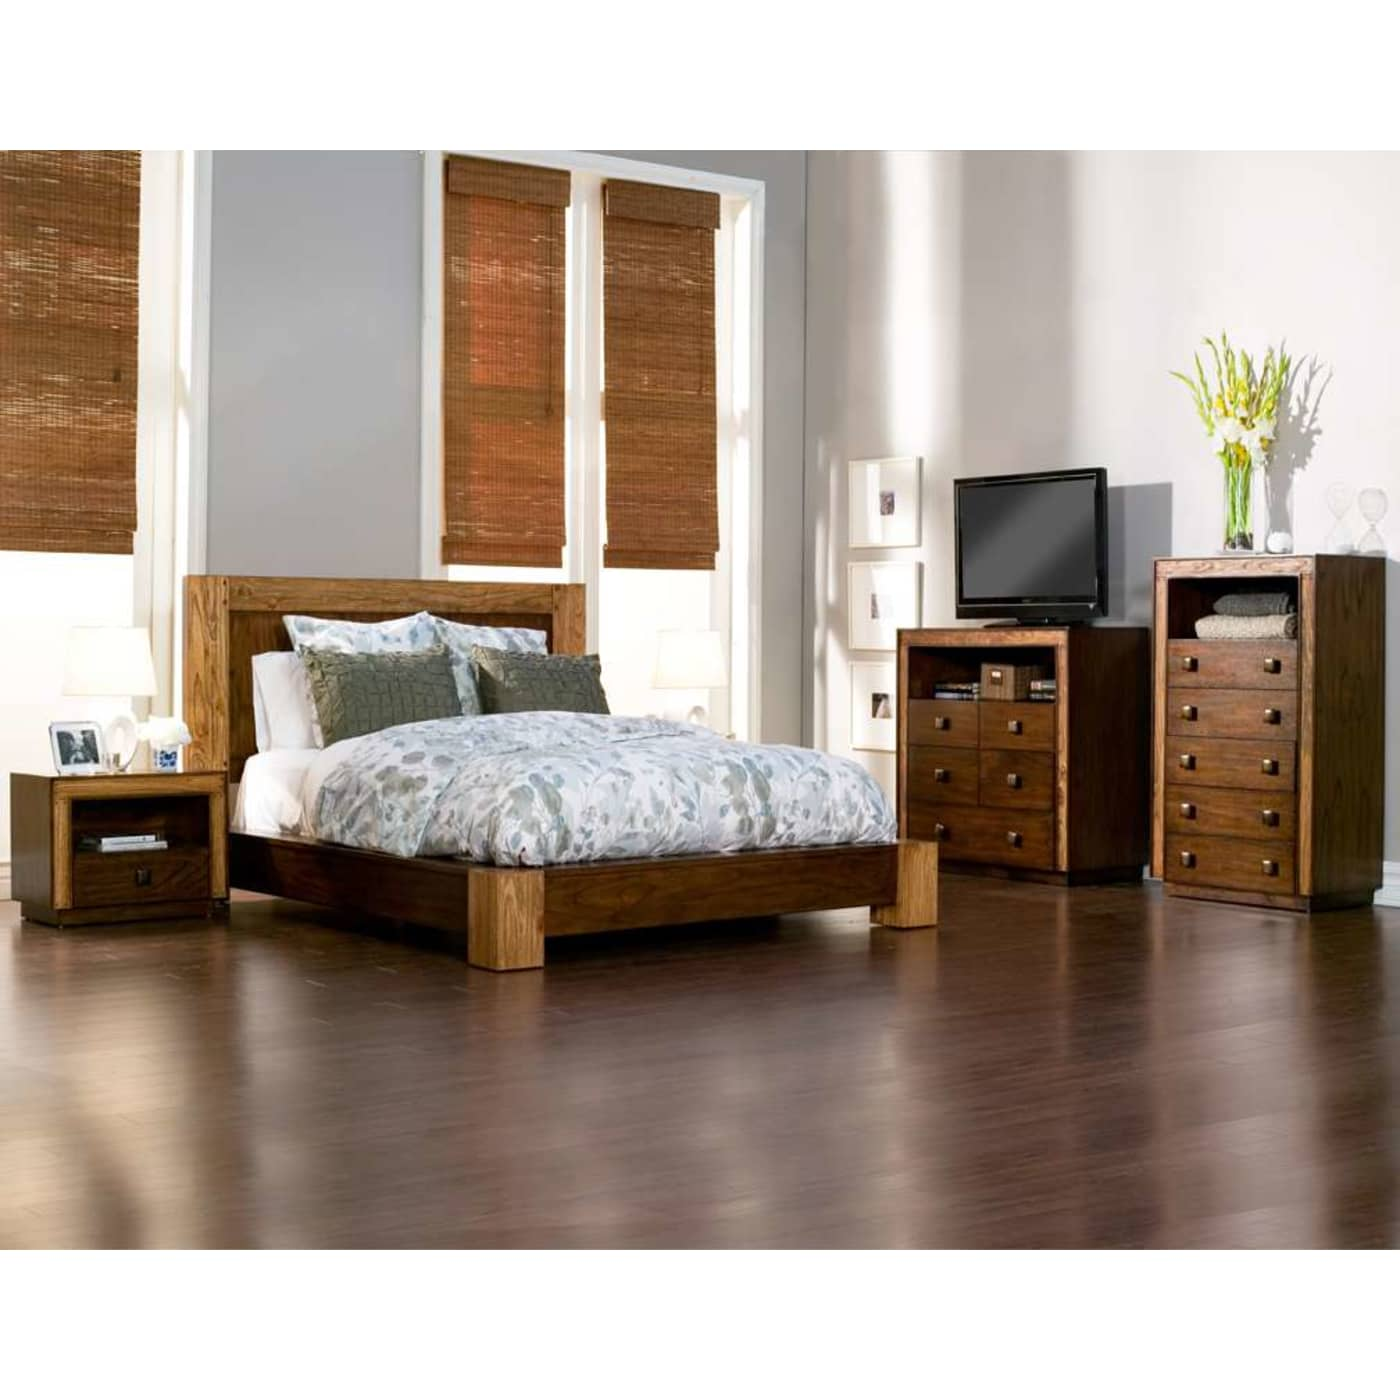 Alpine-Furniture-ORI-811-02